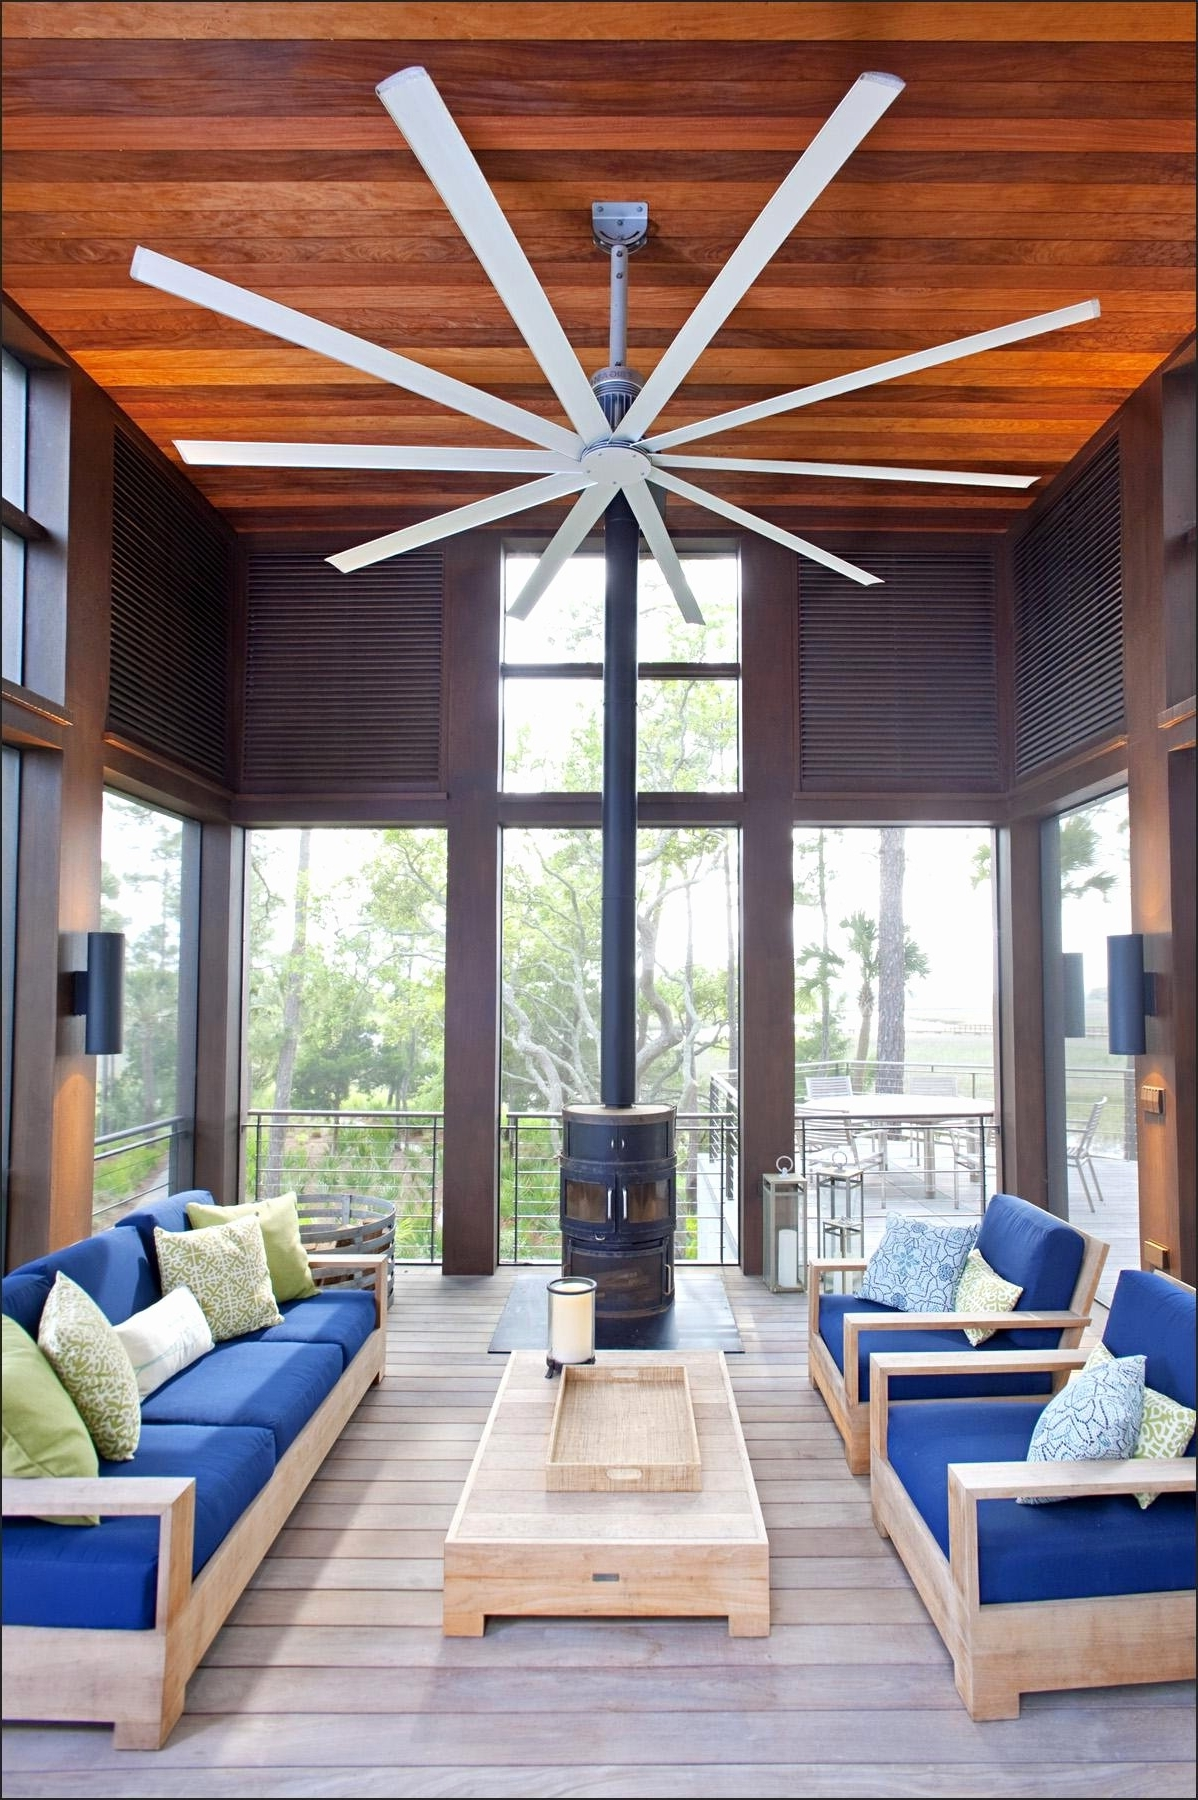 Popular Water Misters For Patios Best Of 50 Awesome Outdoor Ceiling Fans Pertaining To Outdoor Ceiling Fans With Misters (View 18 of 20)